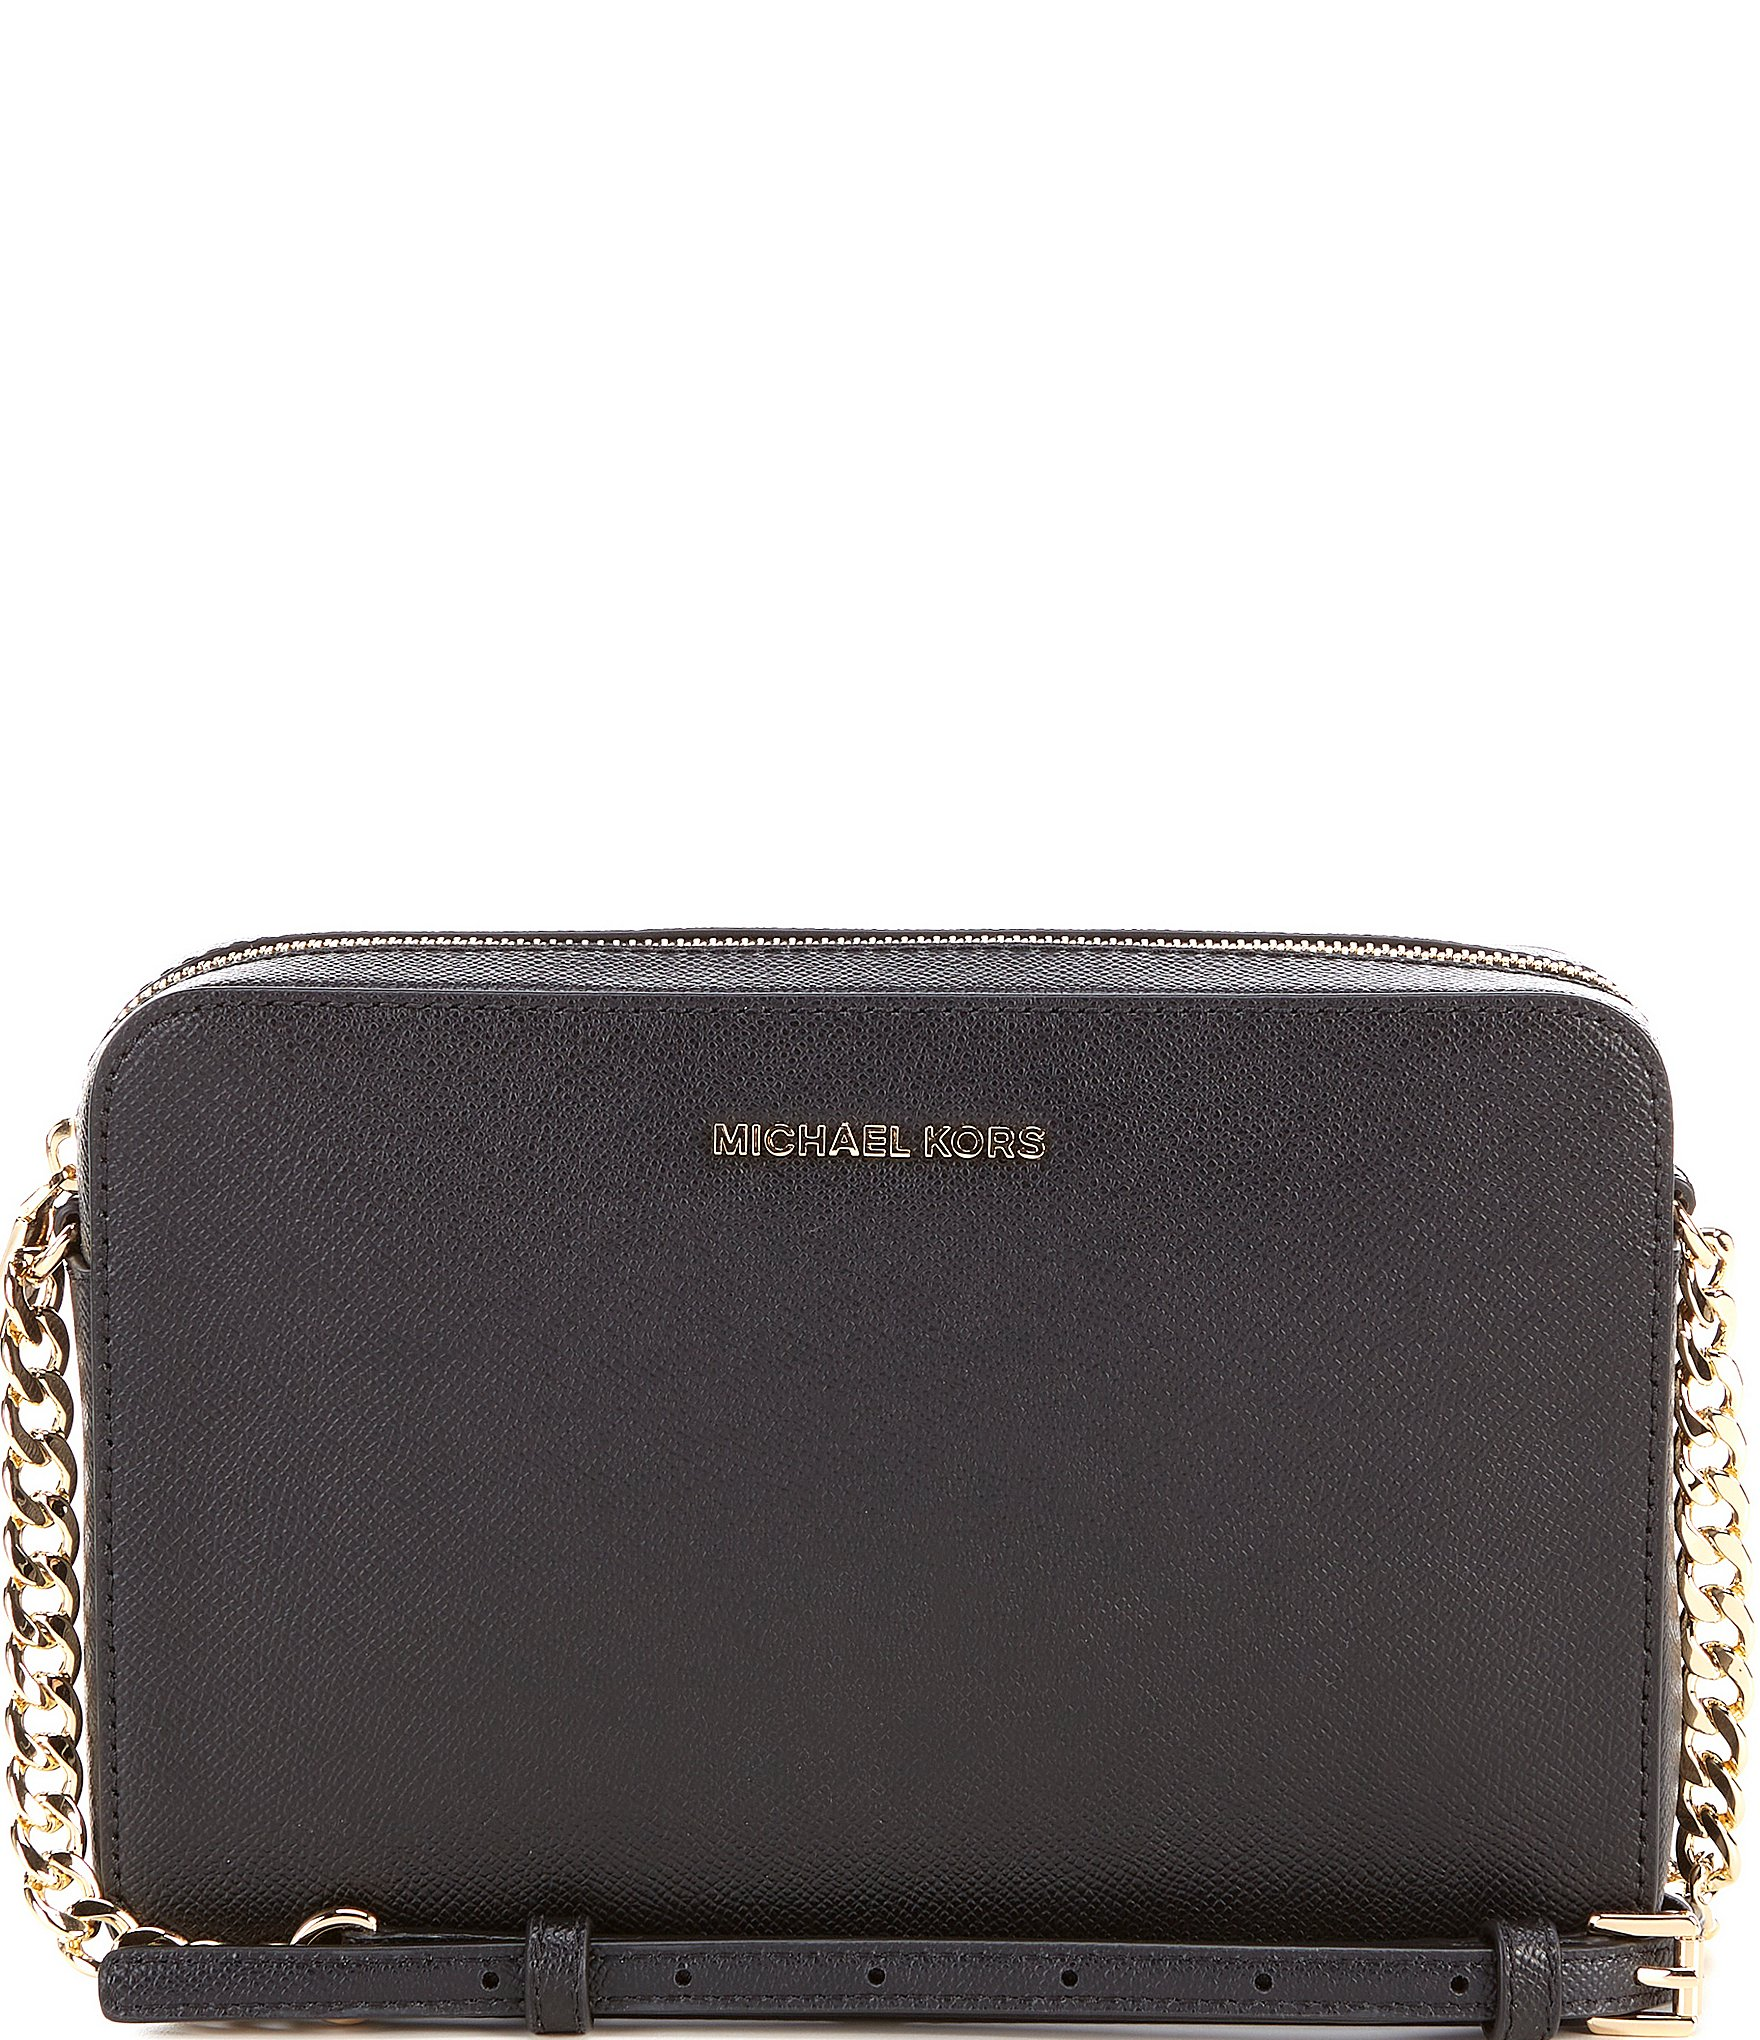 Michael Kors Mini Guitar Strap Crossbody (Black) Cross Body Handbags OsHBSnAWsq